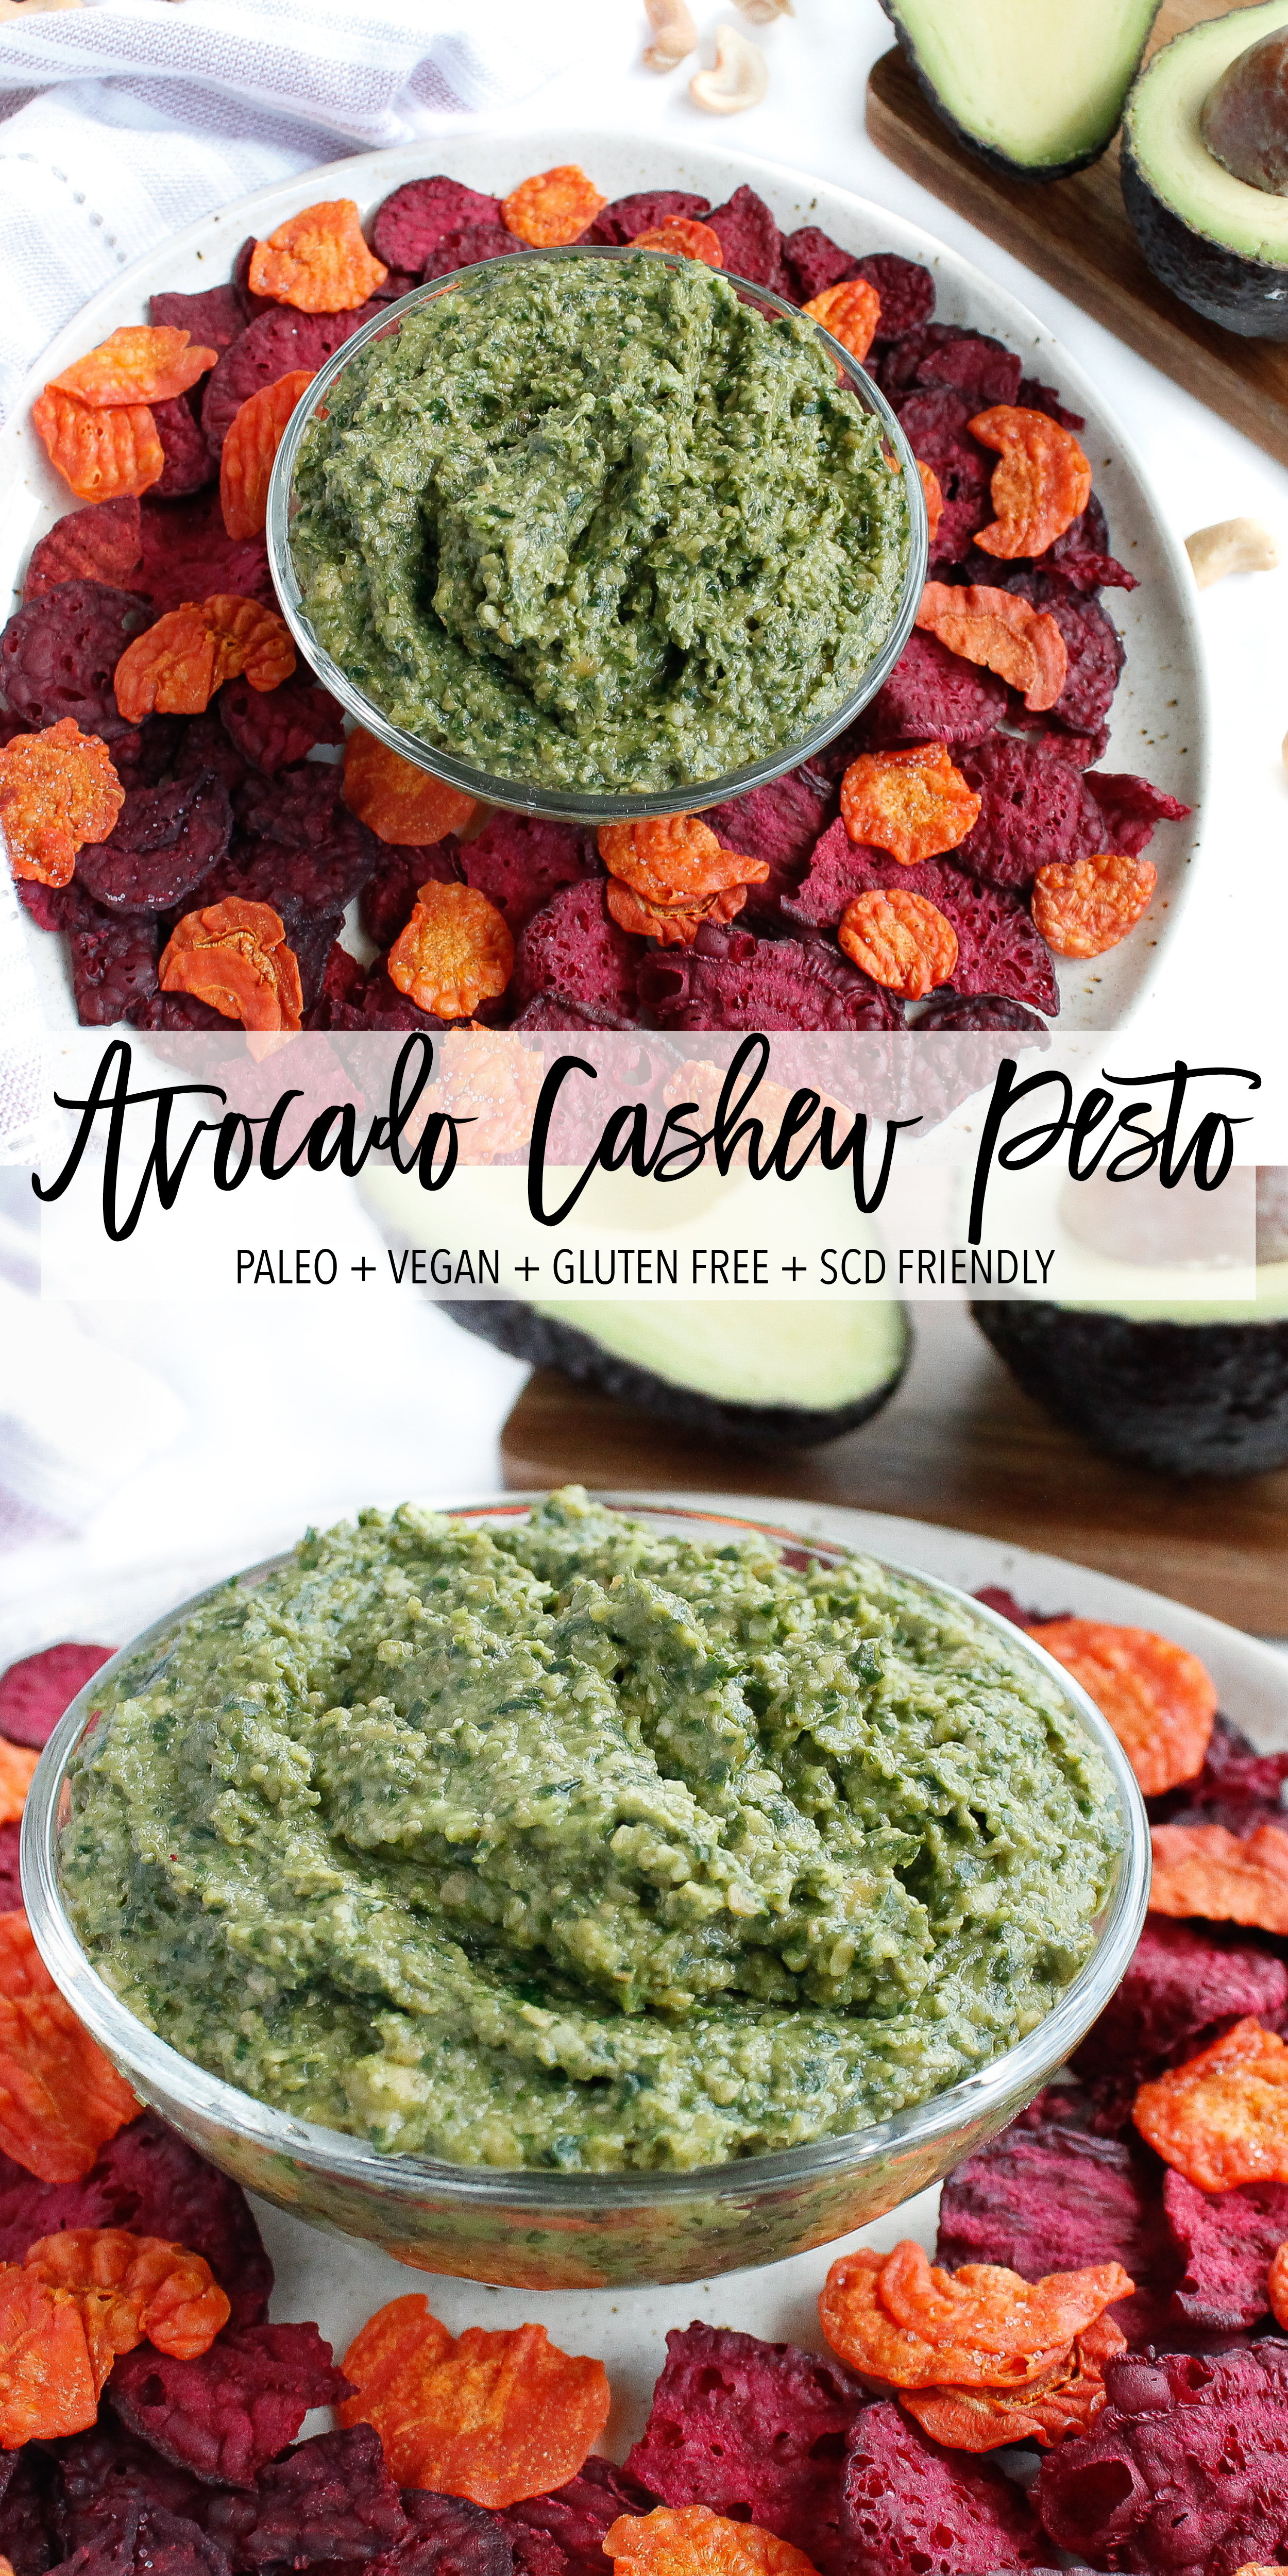 This avocado cashew pesto is a perfect healthy snack option or healthy appetizer! It's paleo, gluten free, vegan and Specific Carbohydrate Diet friendly. This healthy pesto is sure to be a crowd pleaser at your next party. Click through to try the recipe for yourself! #paleo #veganpesto #pesto #specificcarbohydratediet